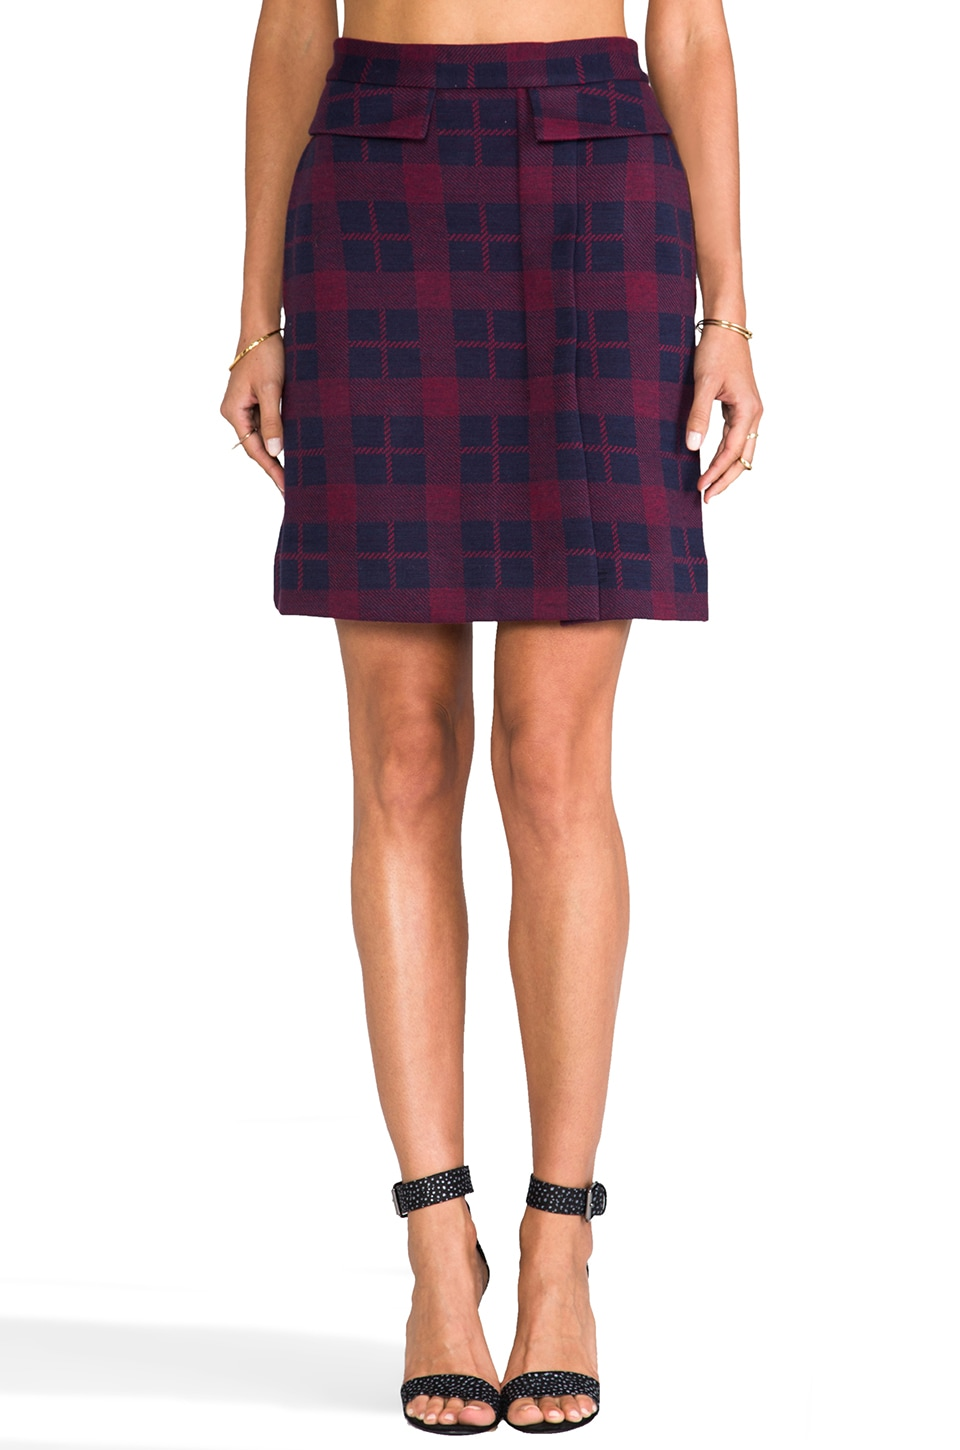 Marc by Marc Jacobs Maya Plaid Jacquard Skirt in Ink Blue Multi